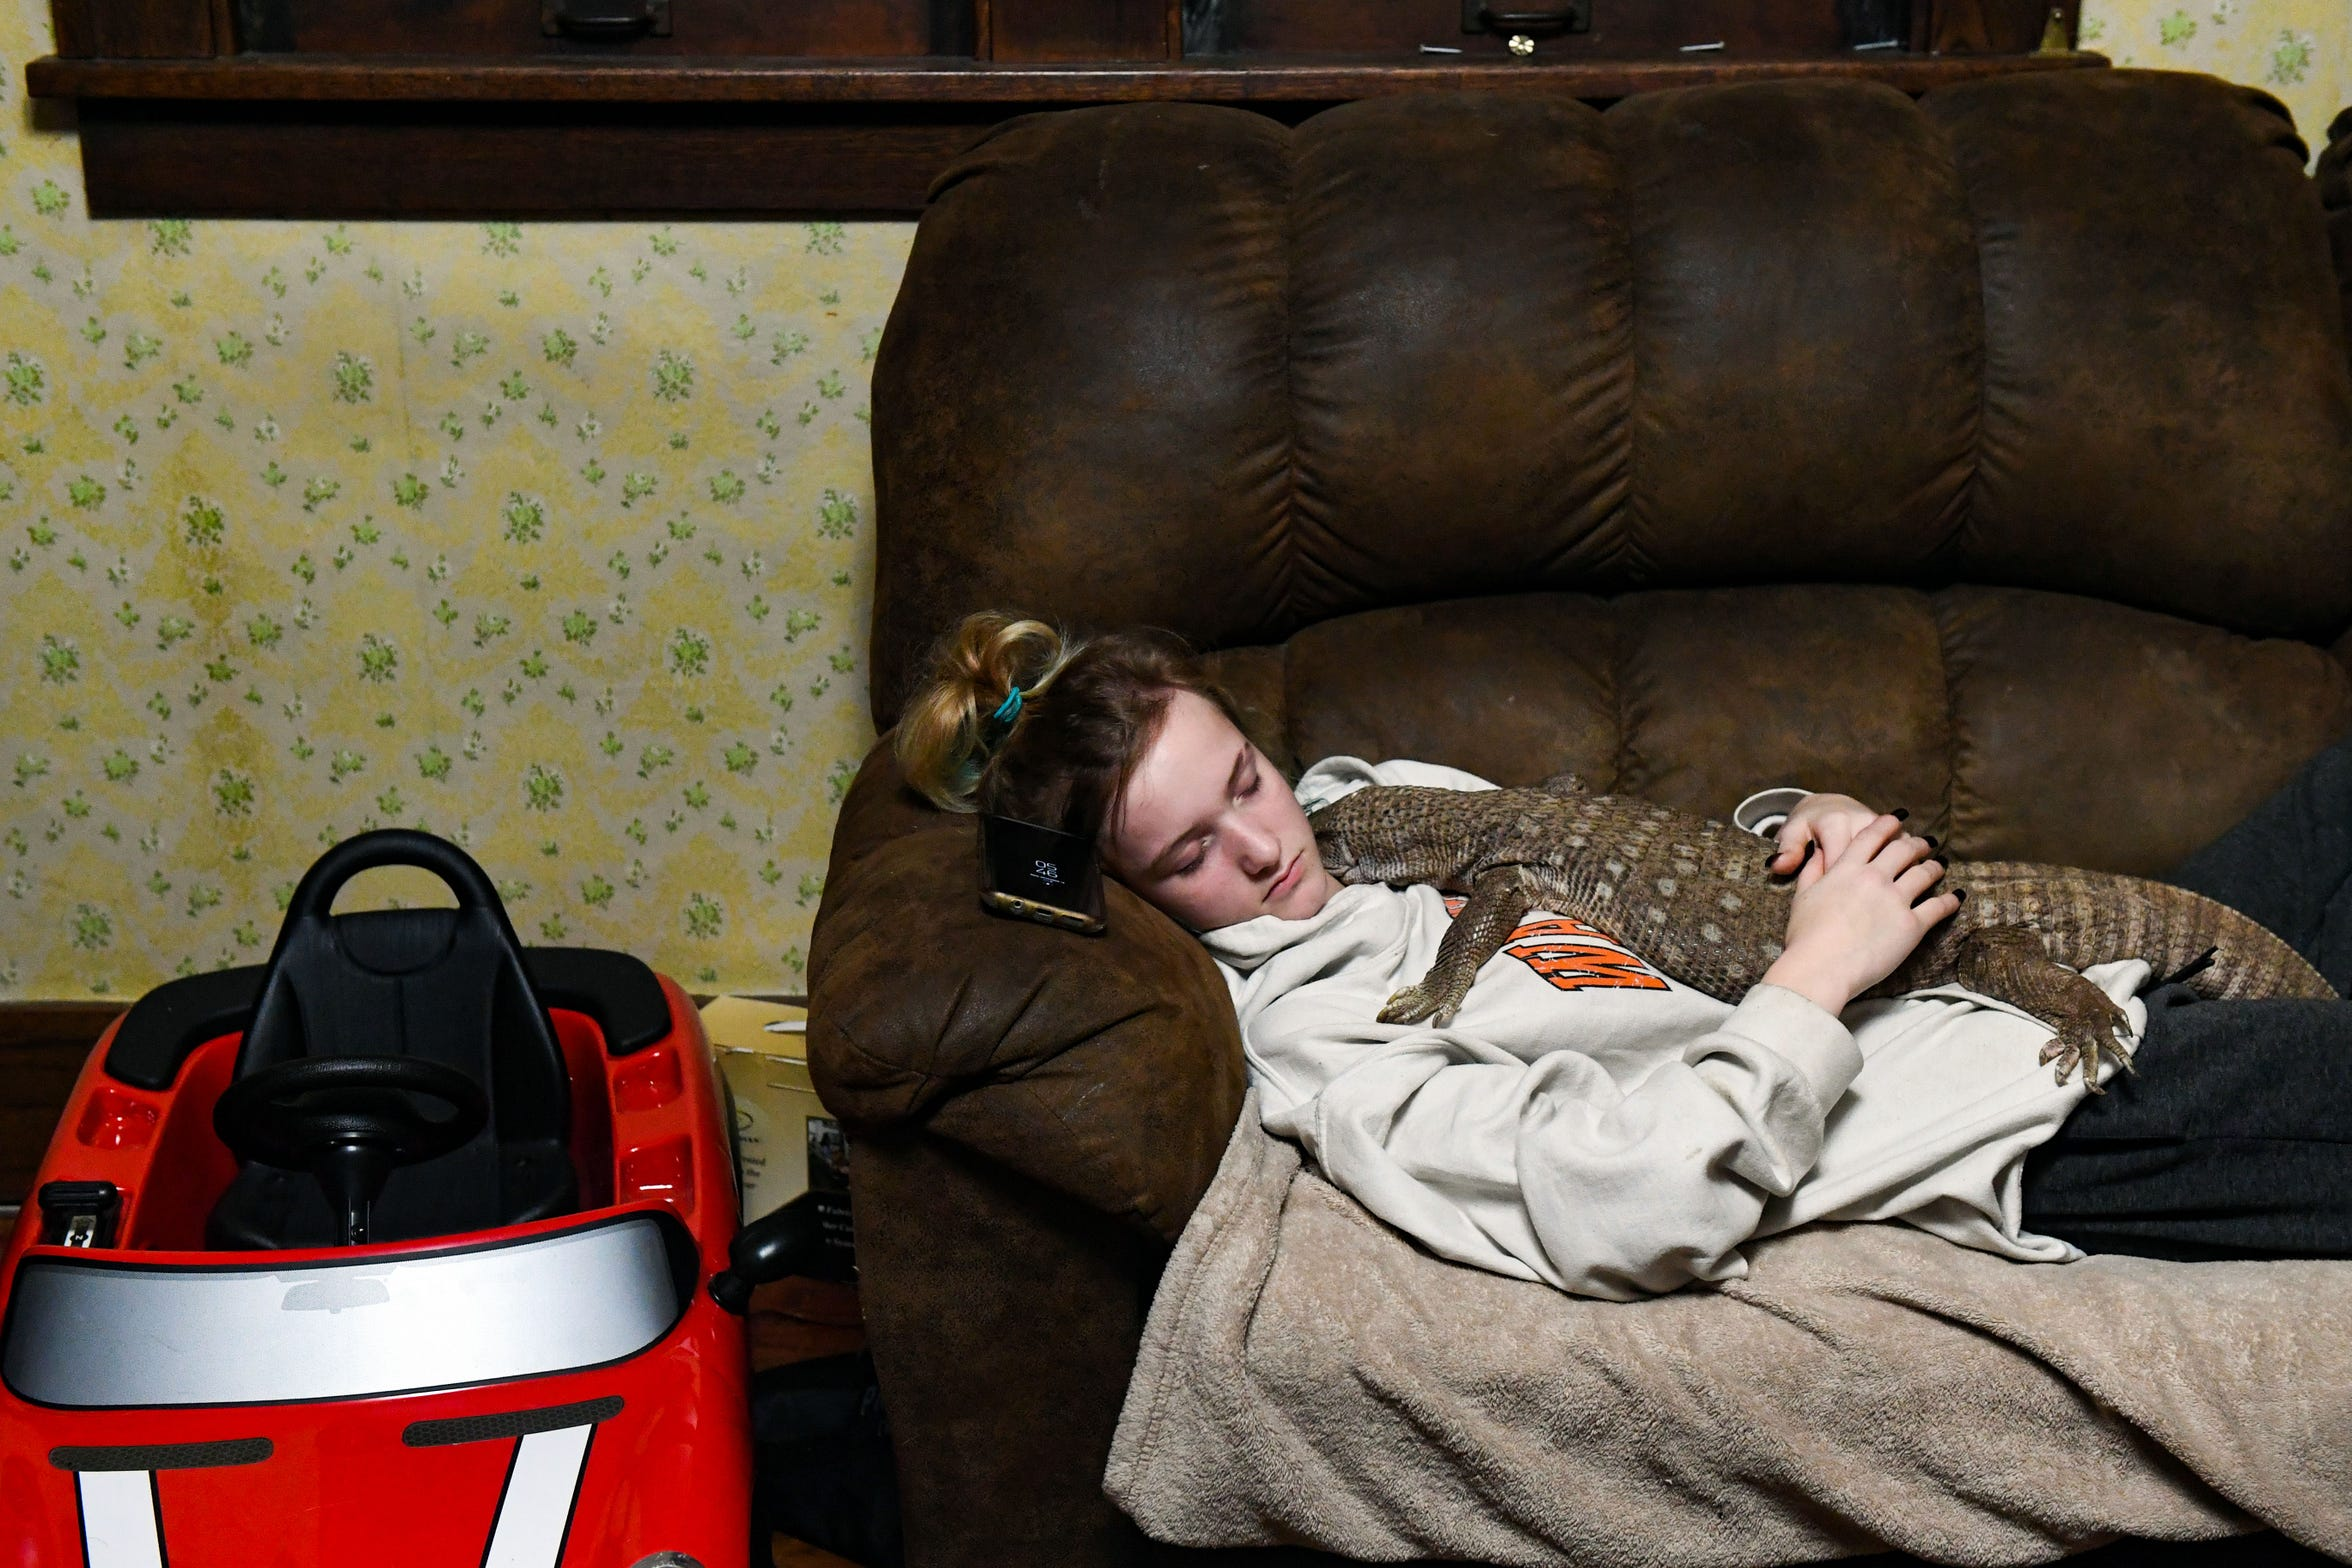 Christina Tinch, 17, naps with Waffles, the family's pet savannah water monitor lizard, on Monday evening, Nov. 18, 2019 at her house in Sioux Falls.